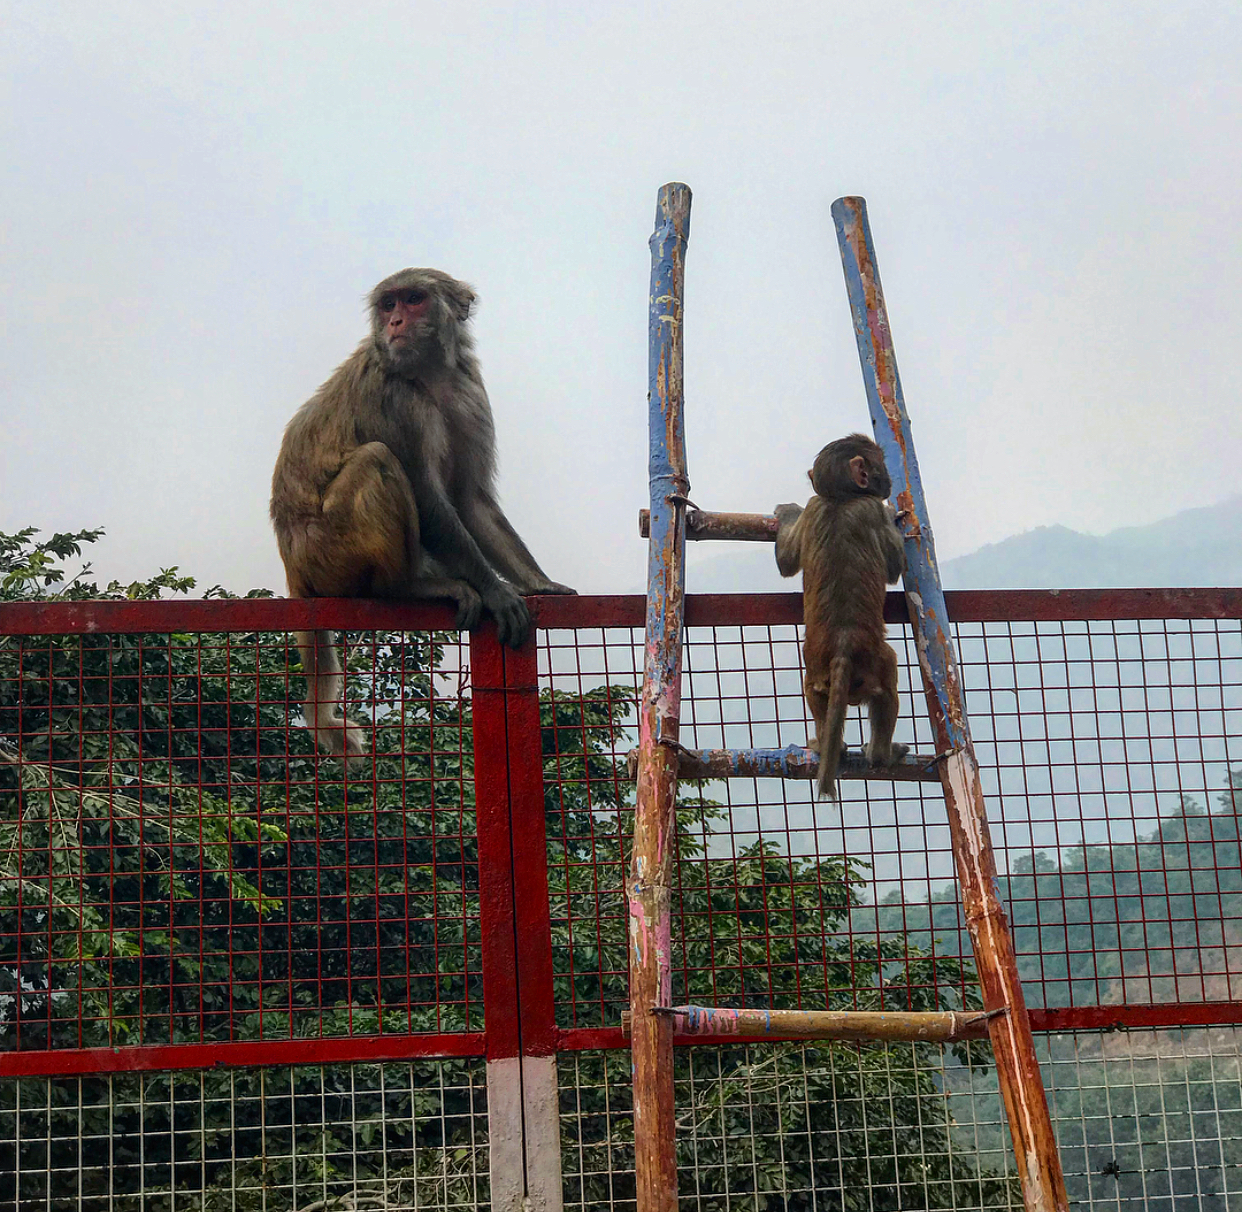 I love this adorable baby monkey climbing up the ladder to his mummy.